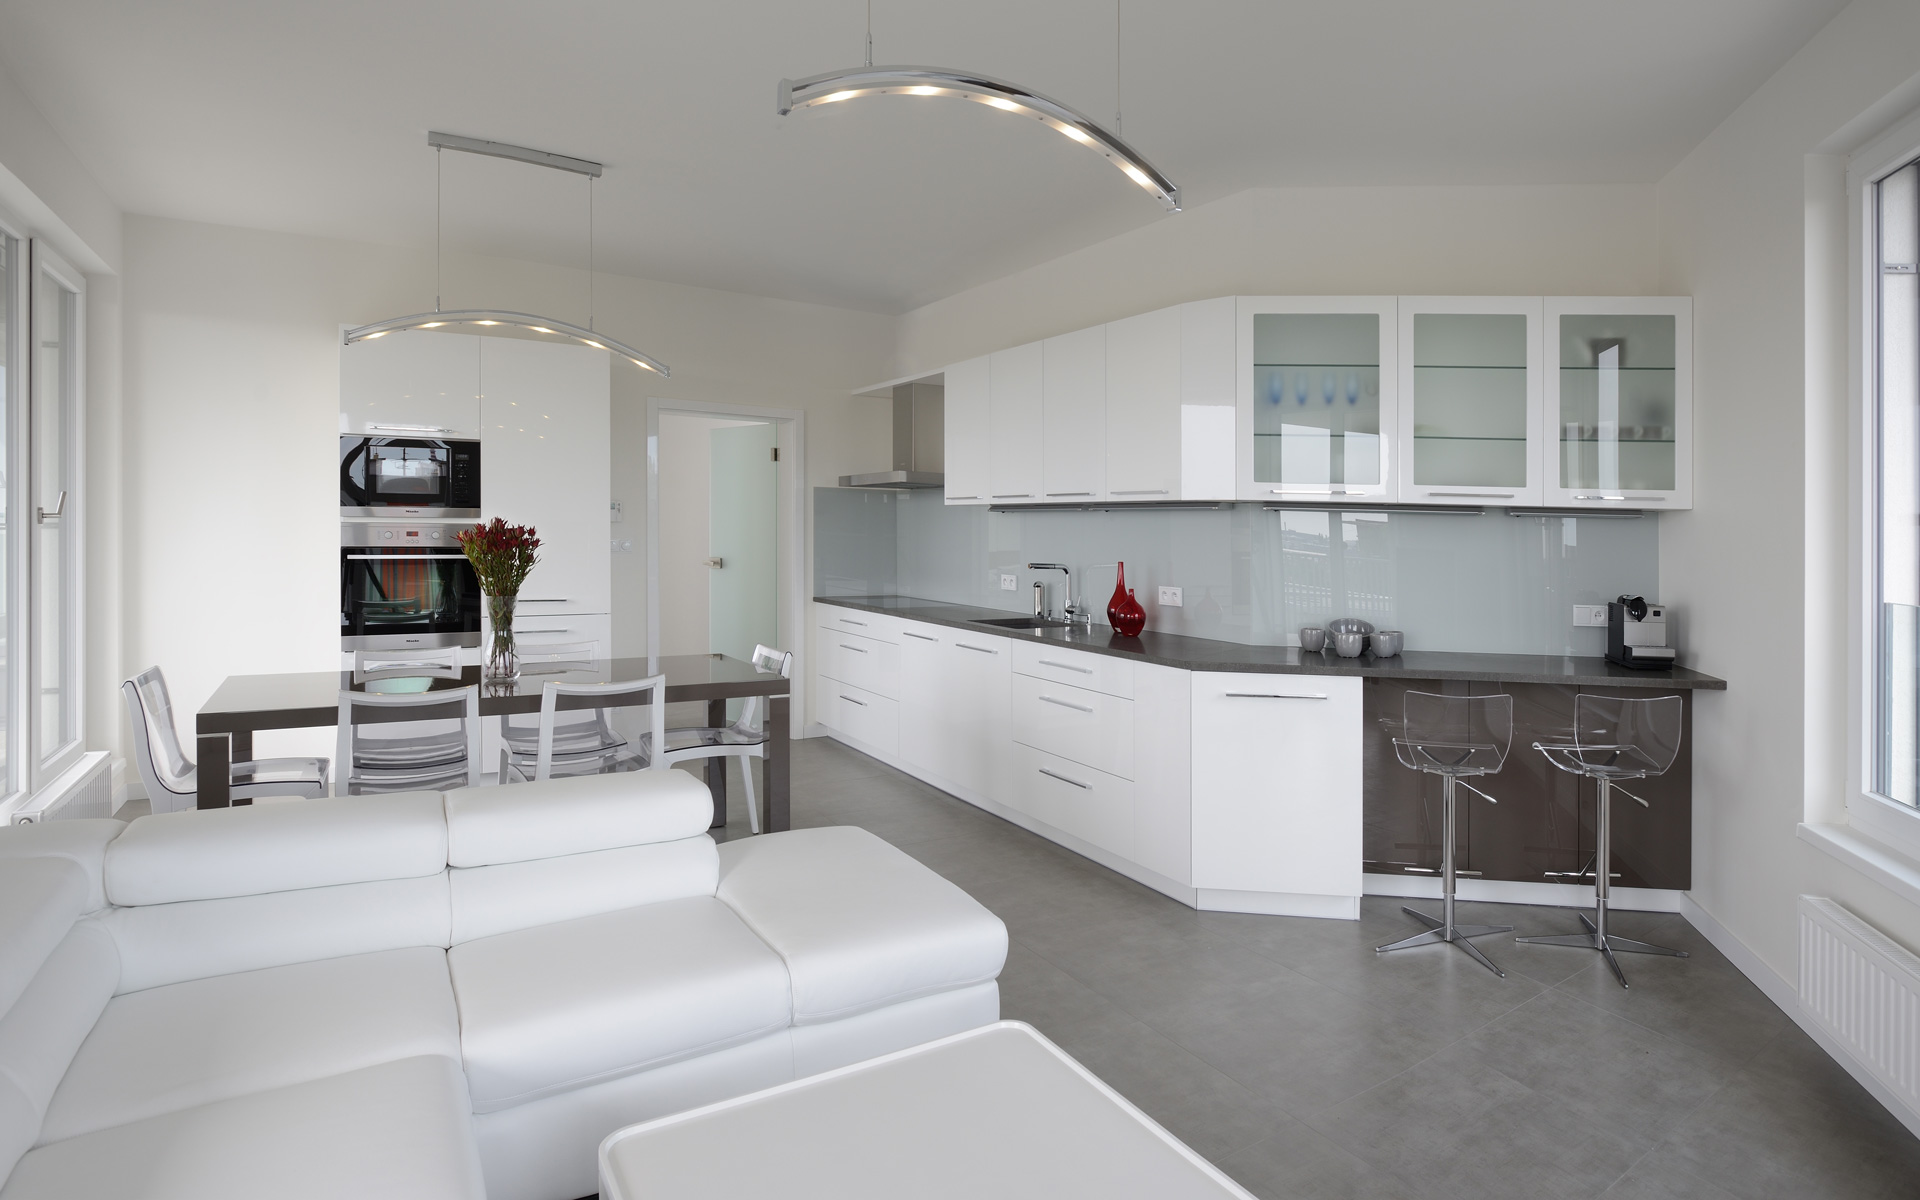 Fresh white interior, kitchen, doors and wardrobe system HANÁK